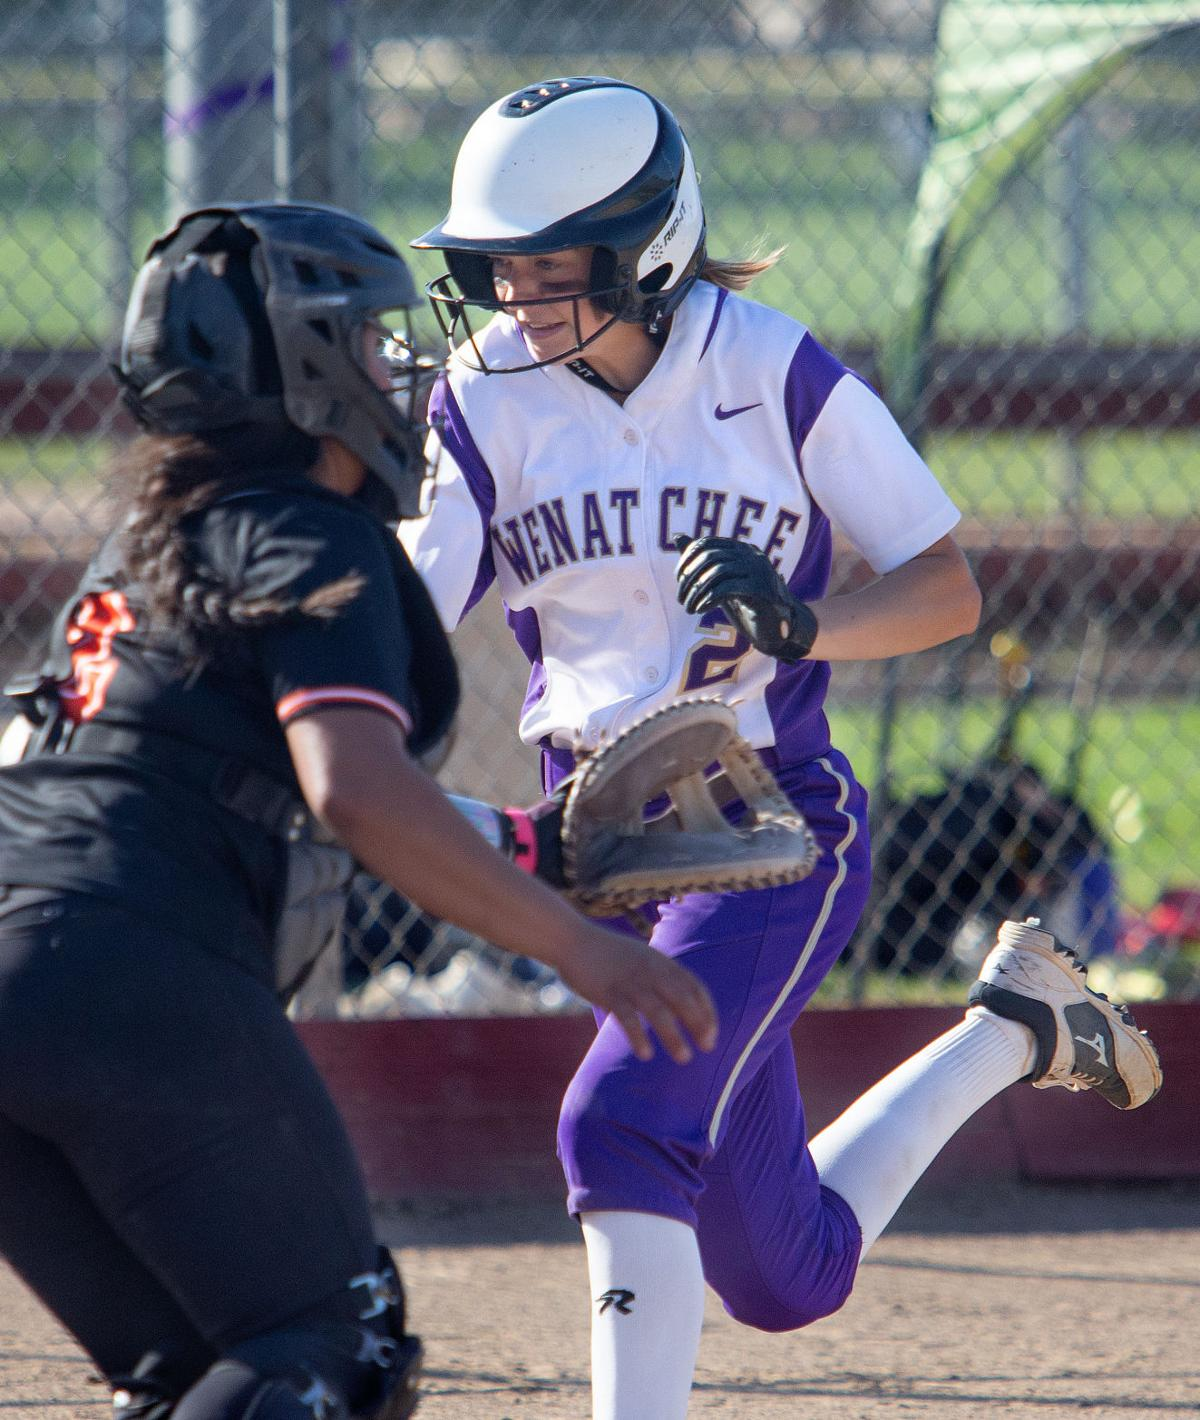 Wenatchee softball photo 1